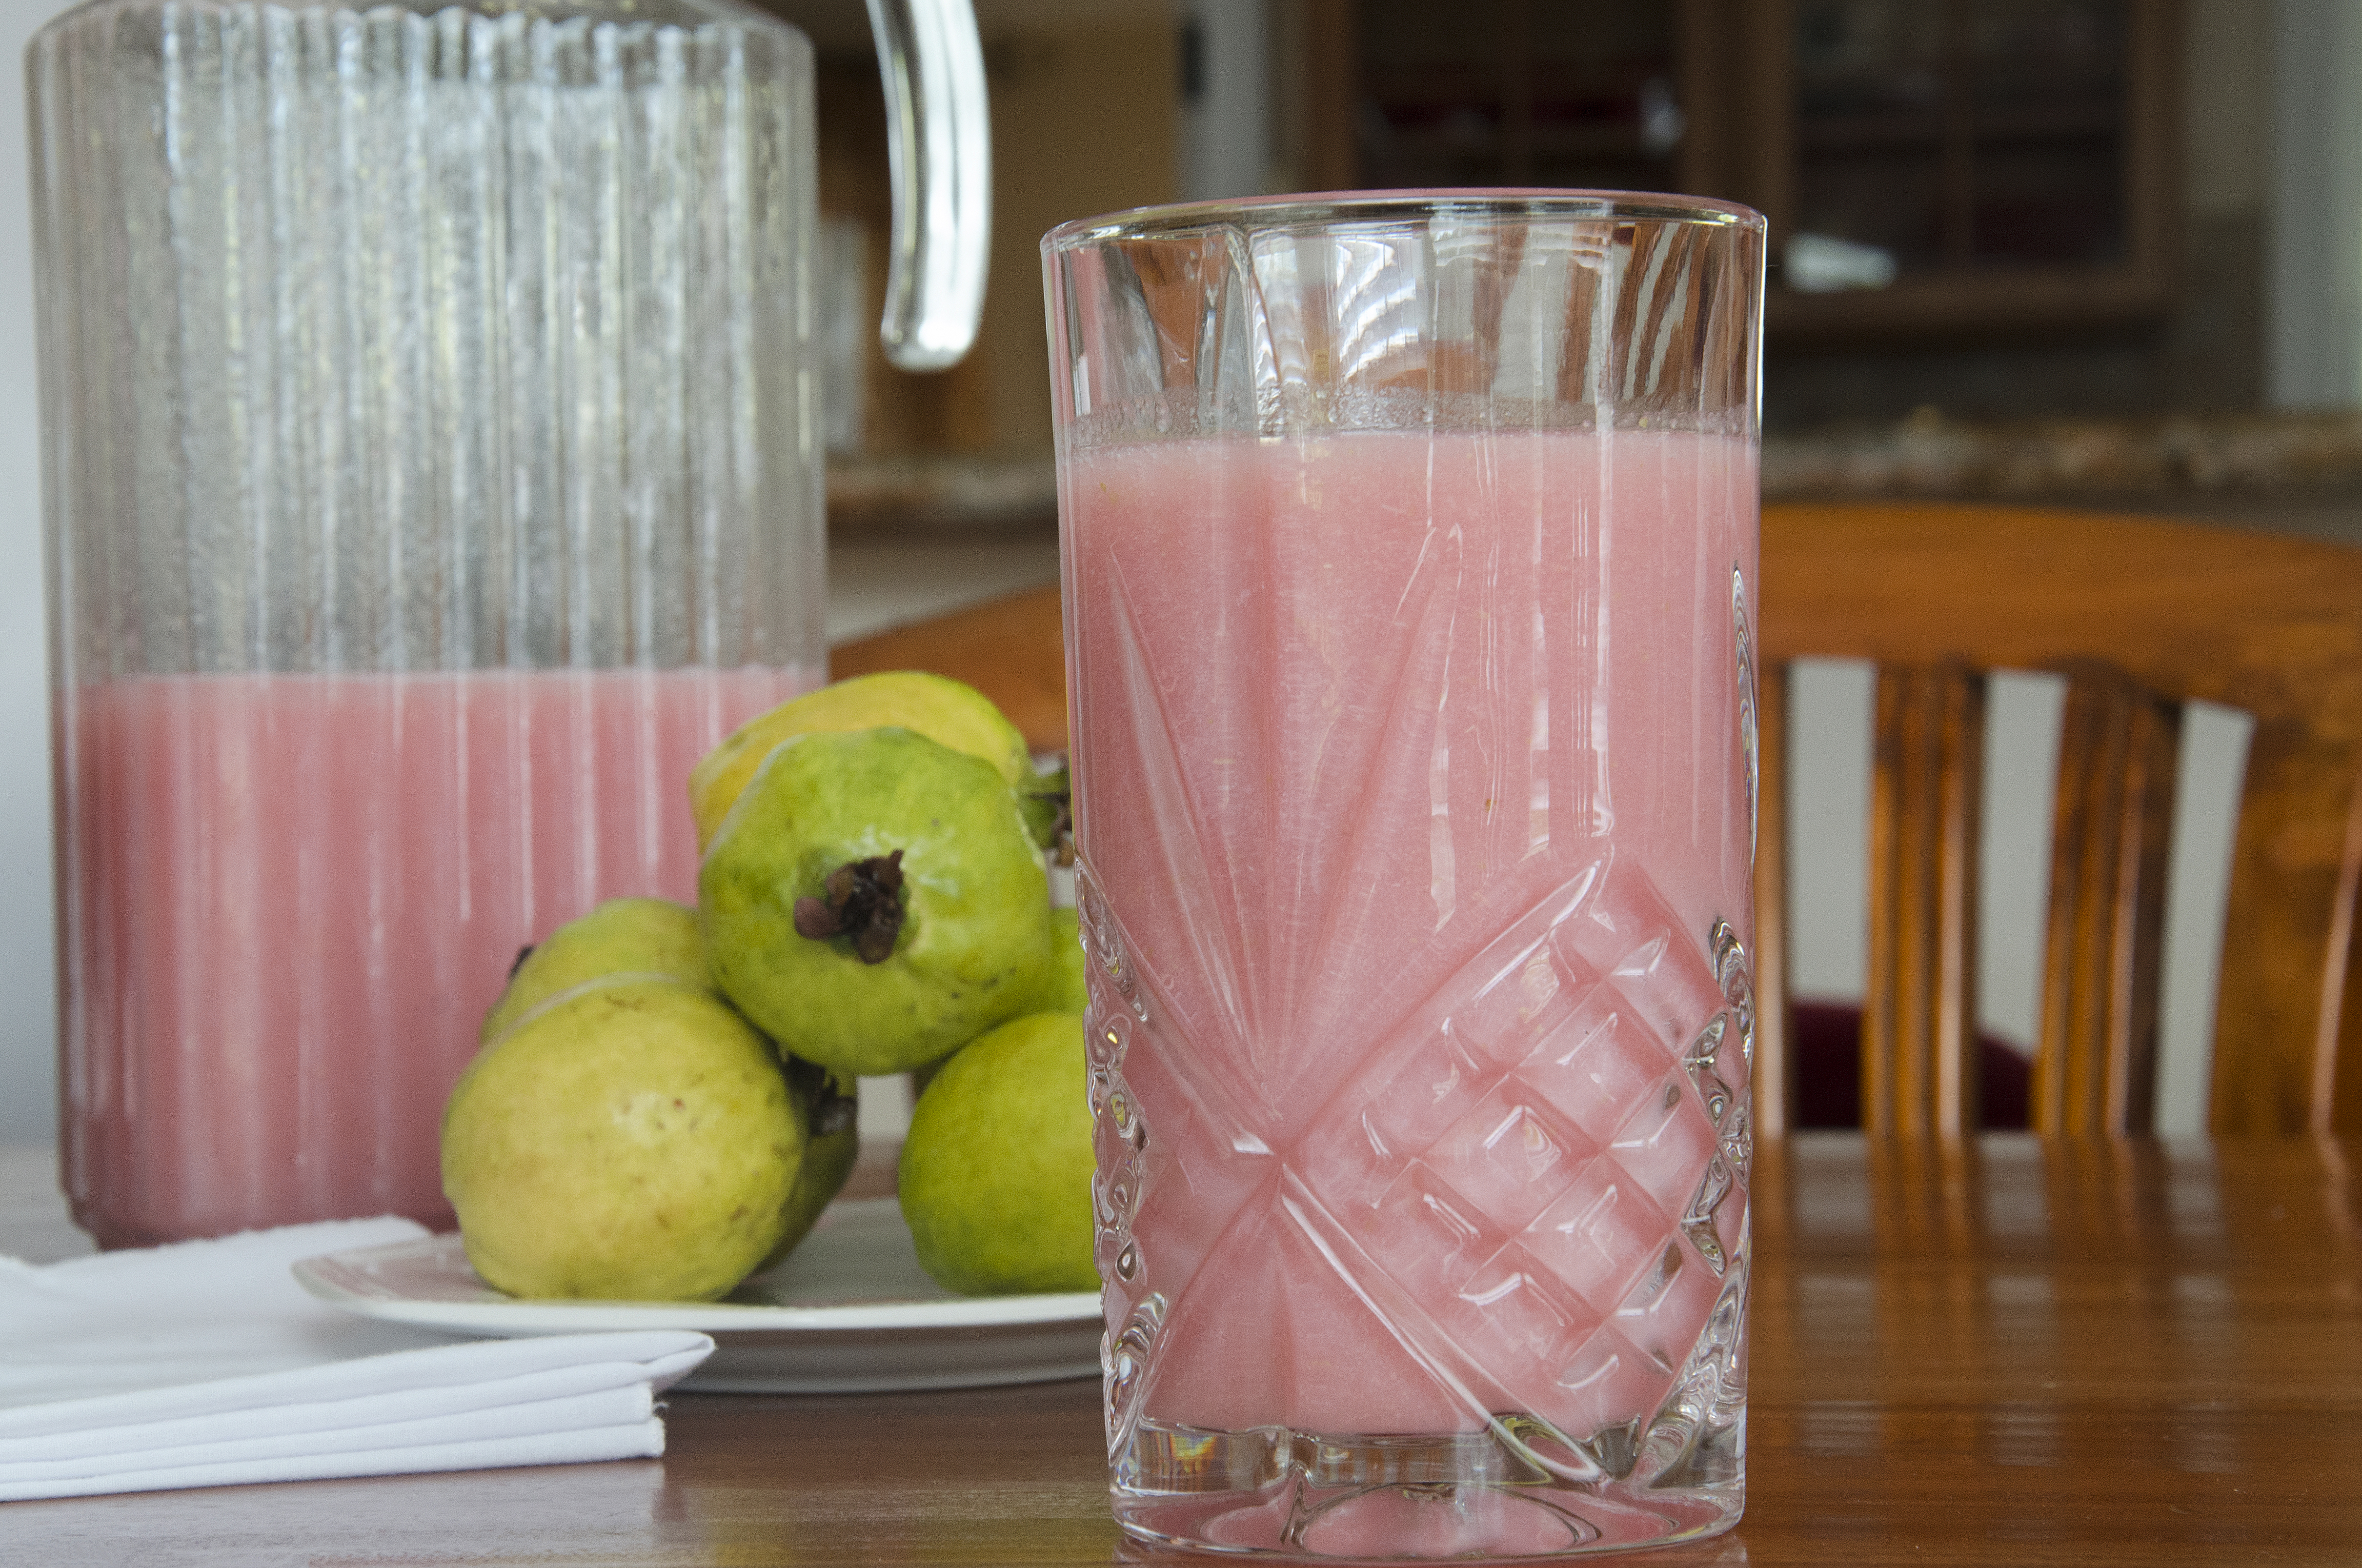 Glass of guava juice